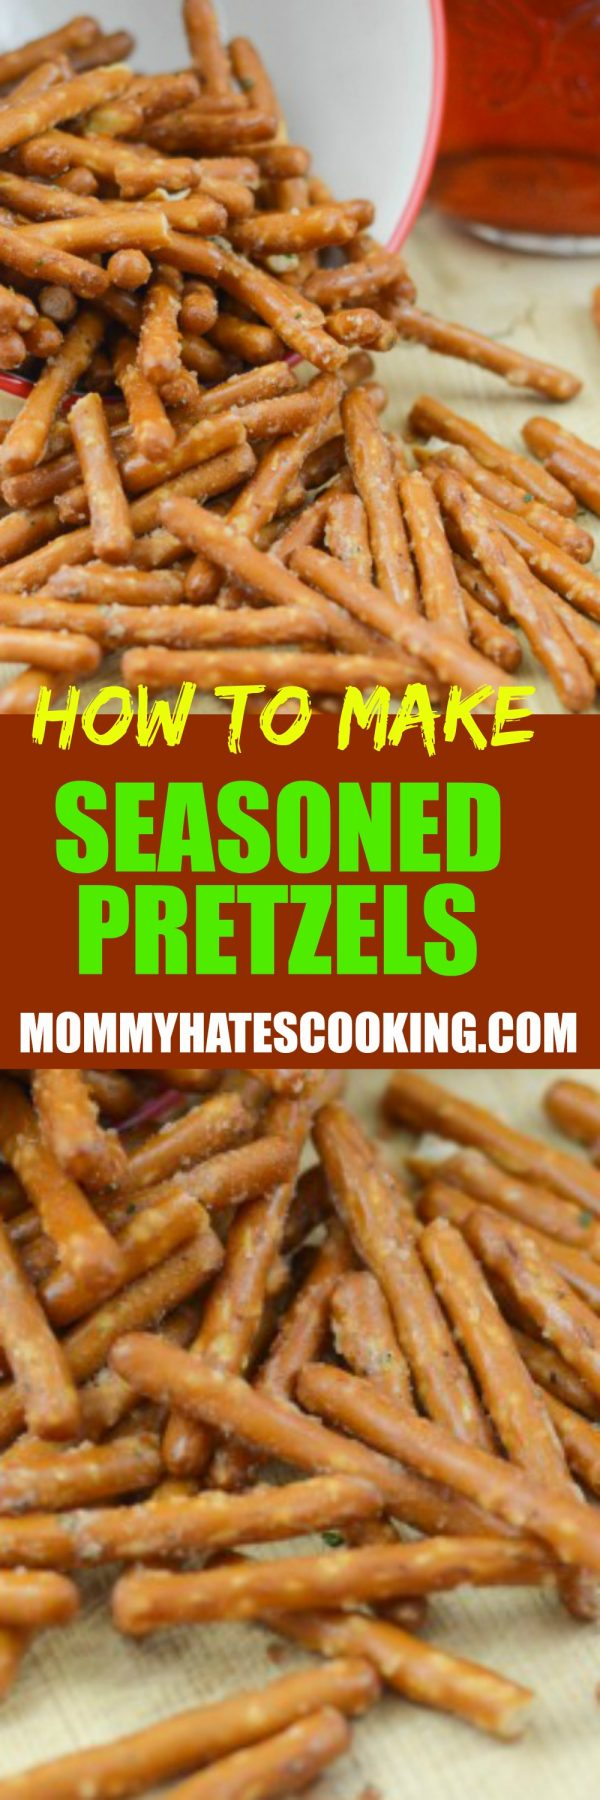 How to Make Seasoned Pretzels